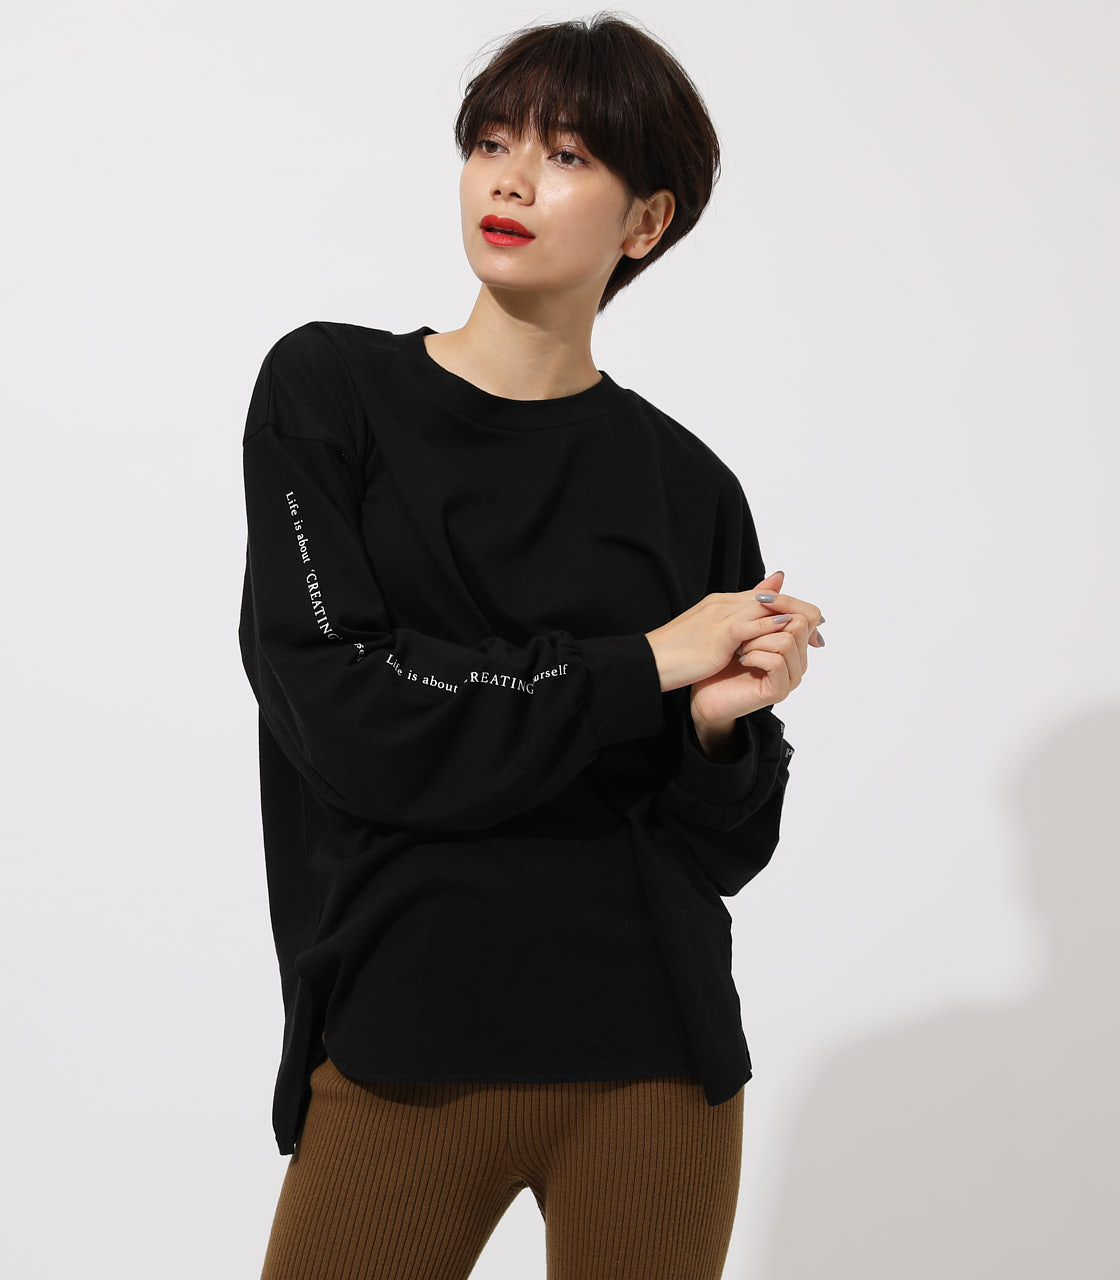 LONG SLEEVE LOOSE TOPS/ロングスリーブルーズトップス 詳細画像 BLK 1